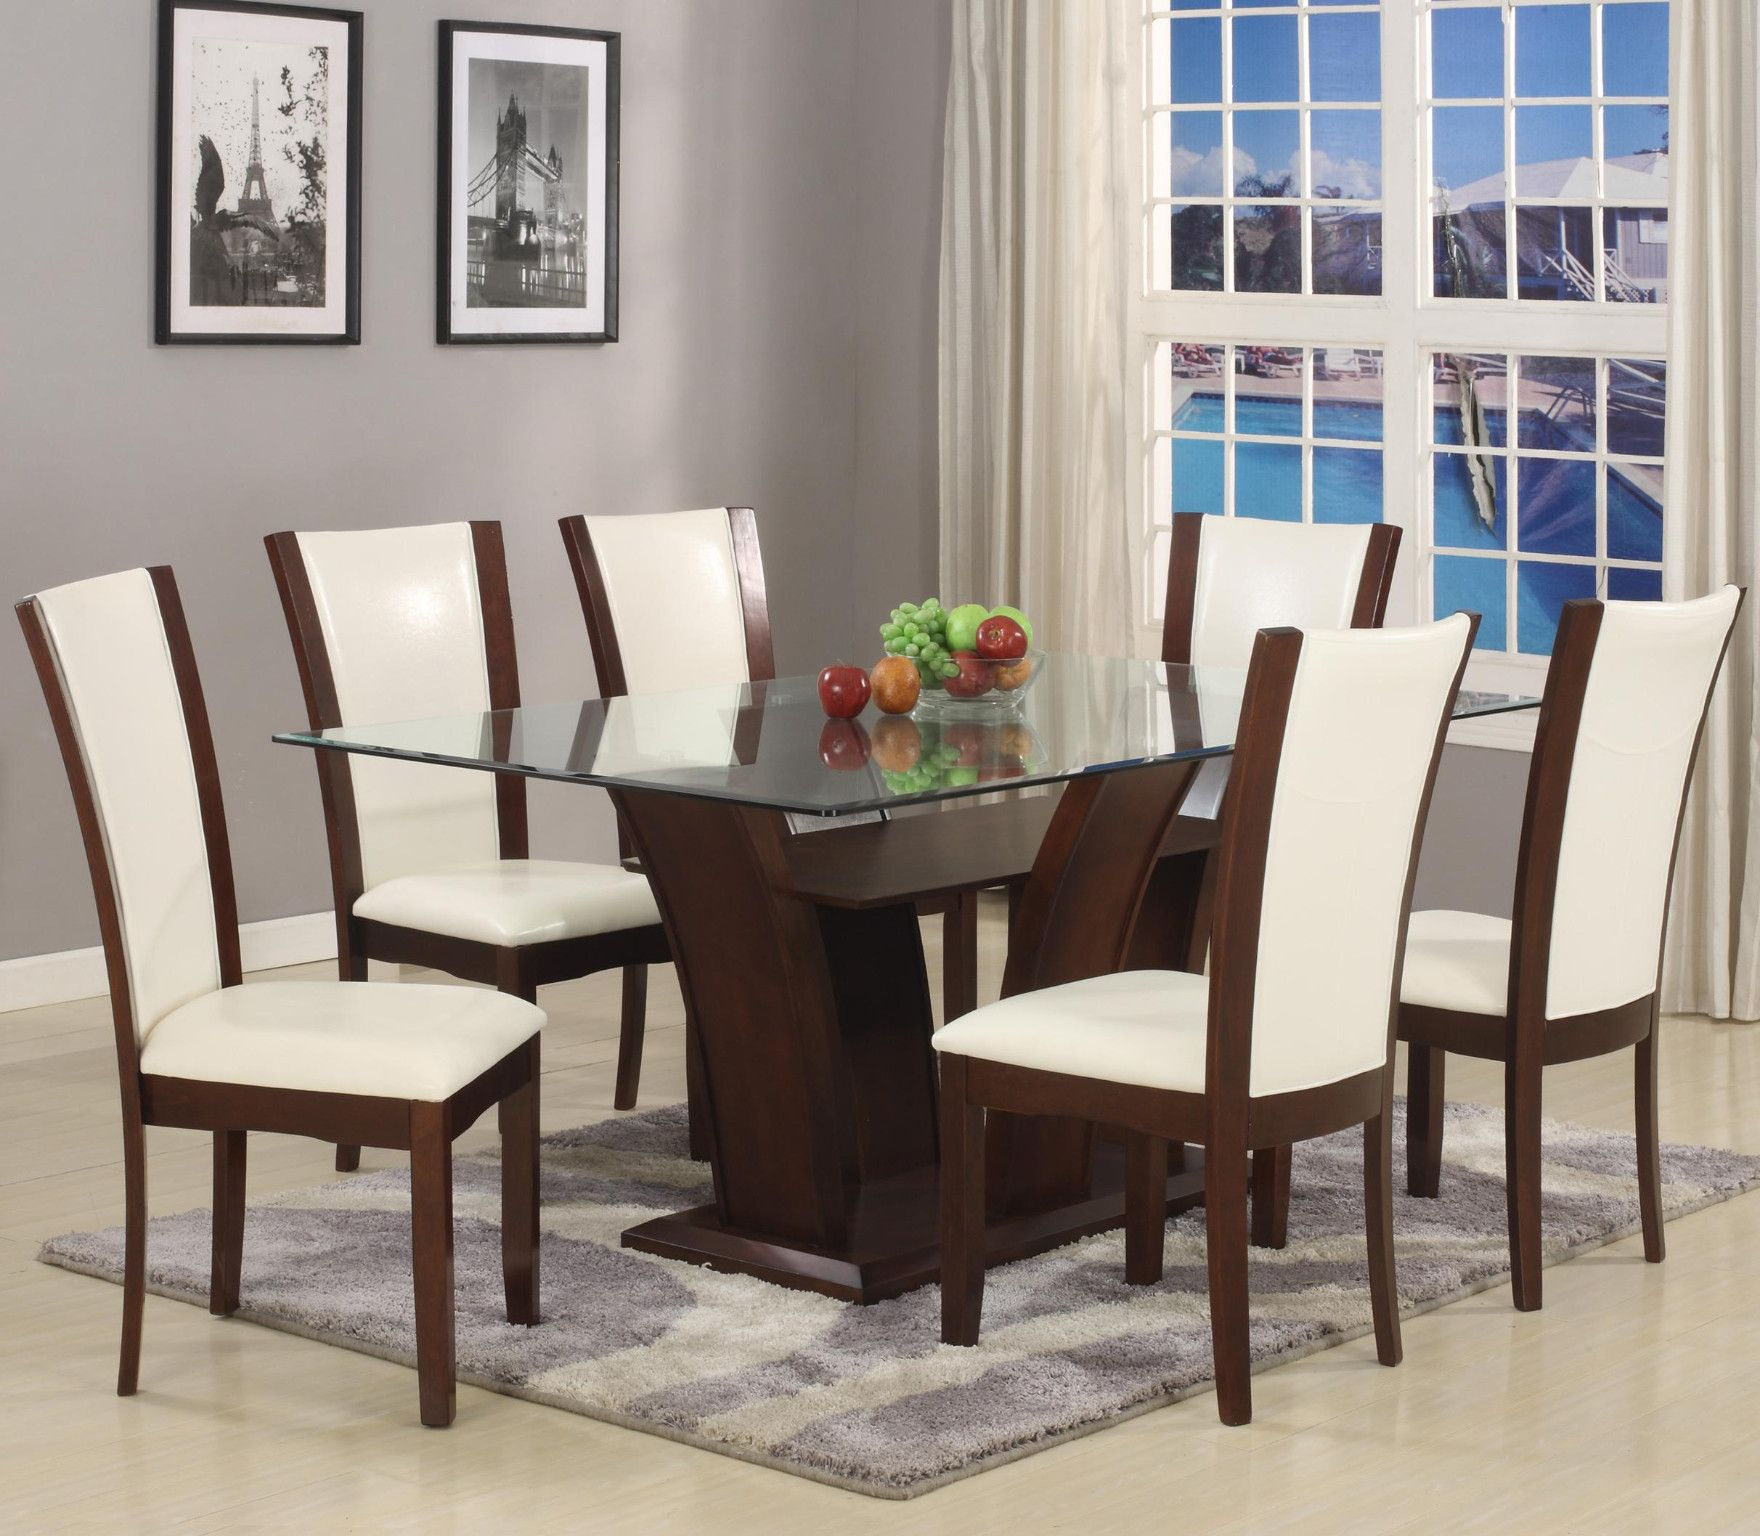 Camelia Dining Room Suite In White Table And 6 Side Chairs 799 00 Measurements Bevel Edge Gl 360 42 X 72 30 H 1210t 4272 Base Leg 12mm